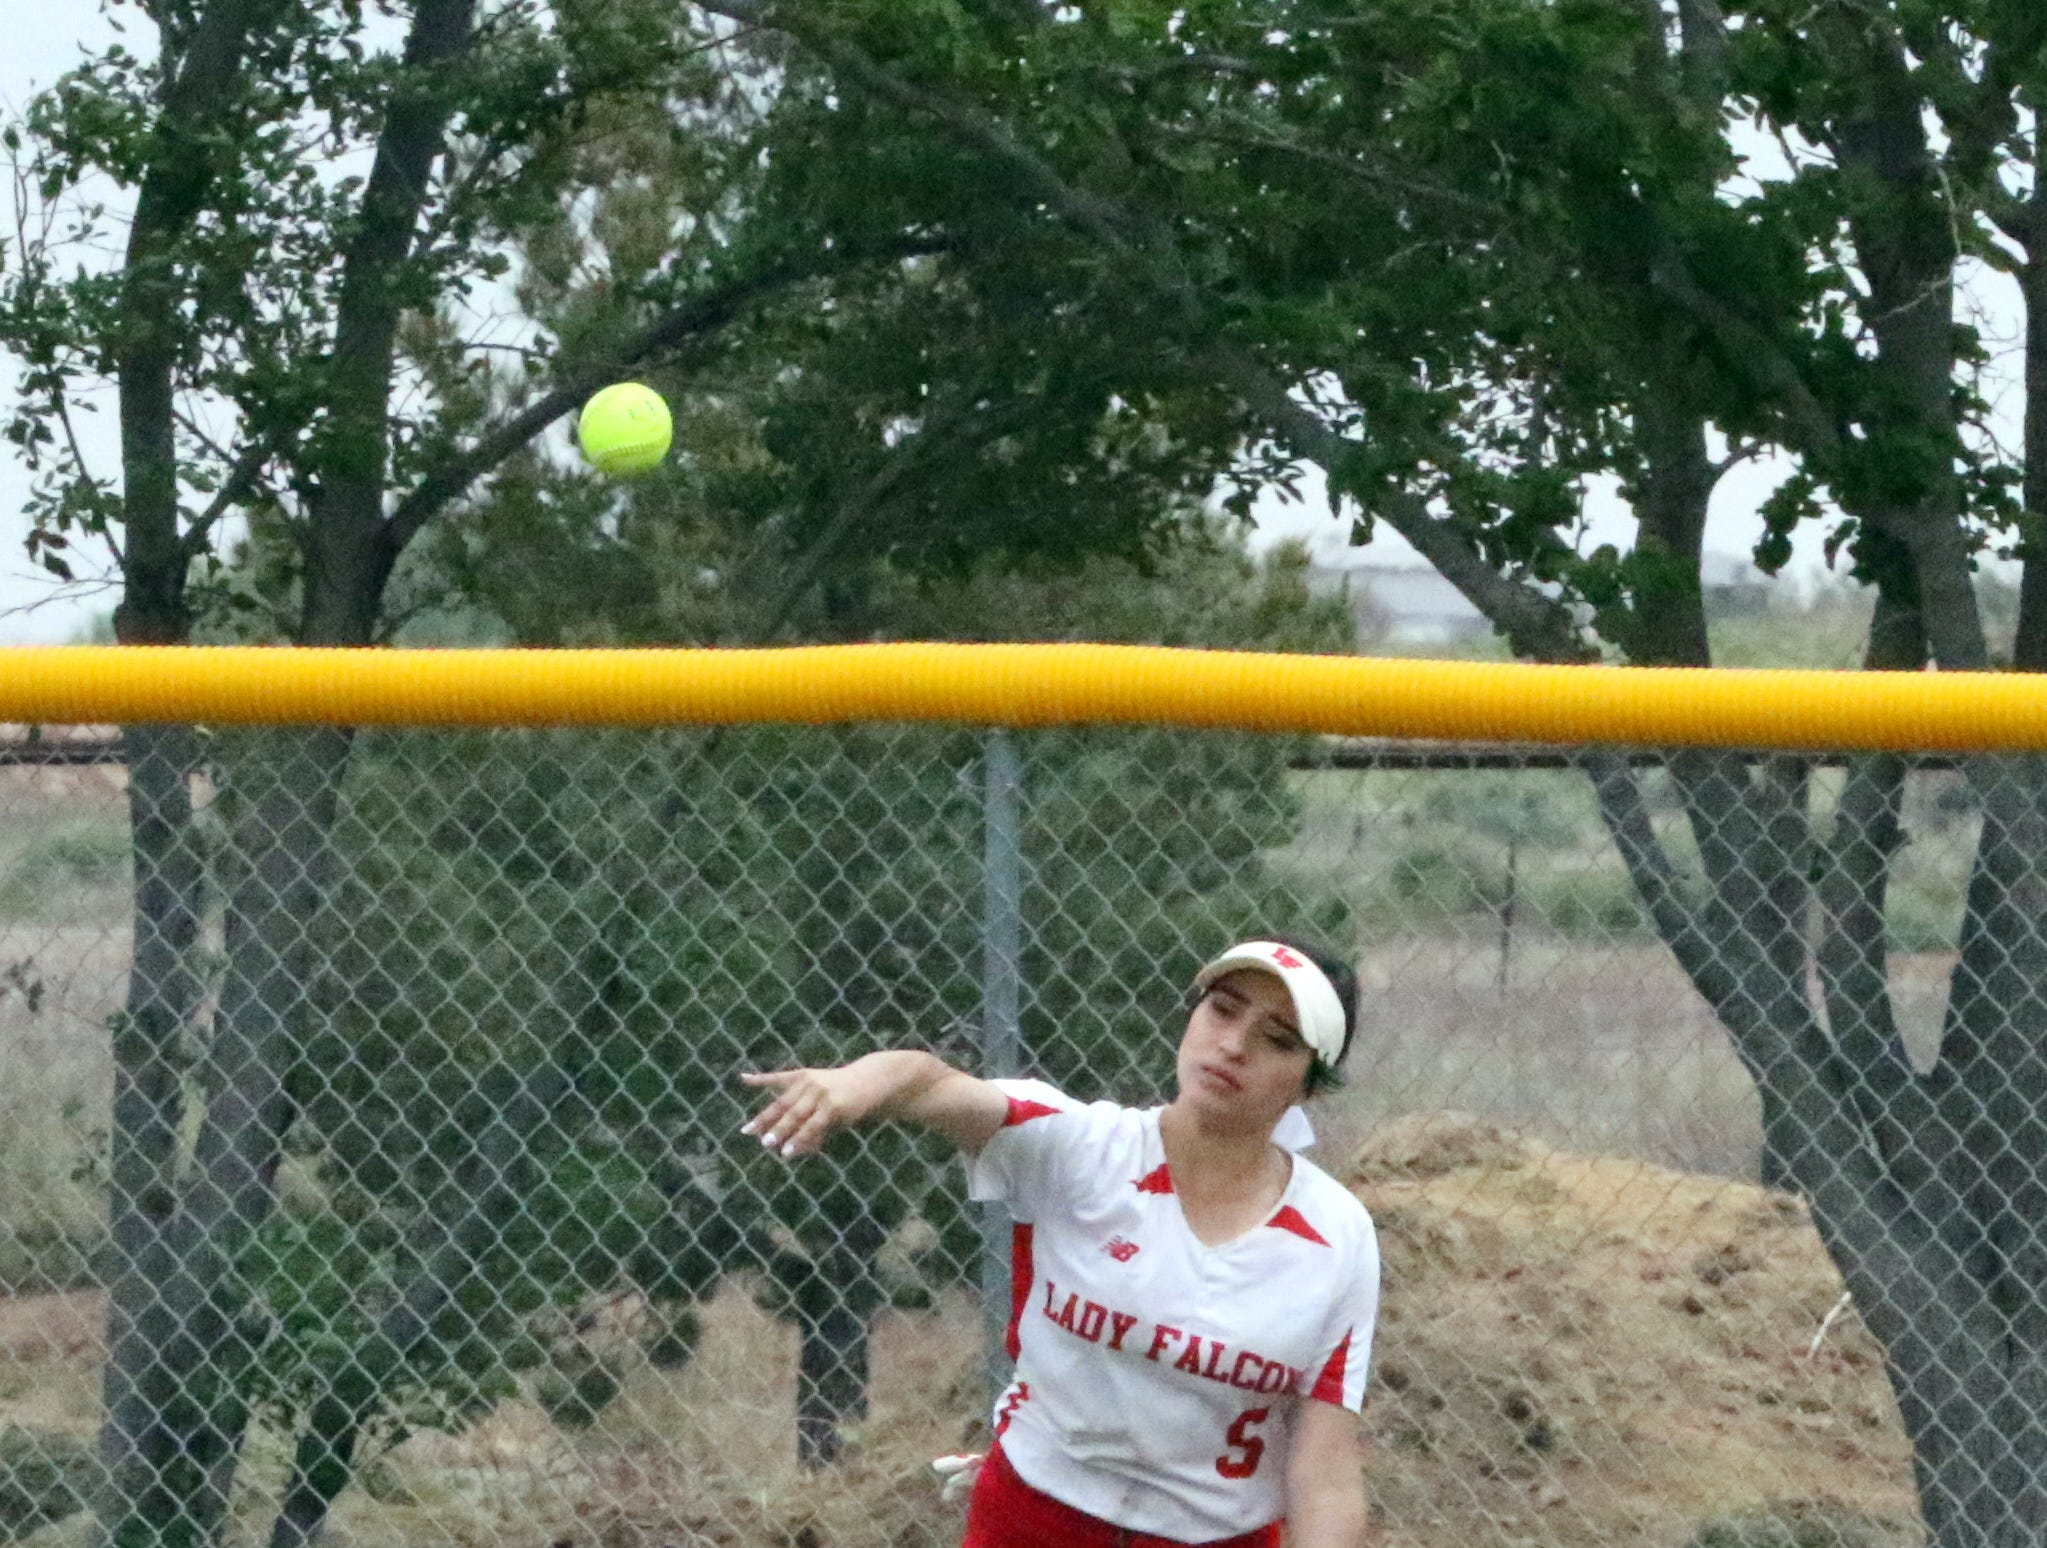 Photo highlights during Saturday's doubleheader. Eunice won Game 1, 13-12 and Loving won Game 2, 16-6.